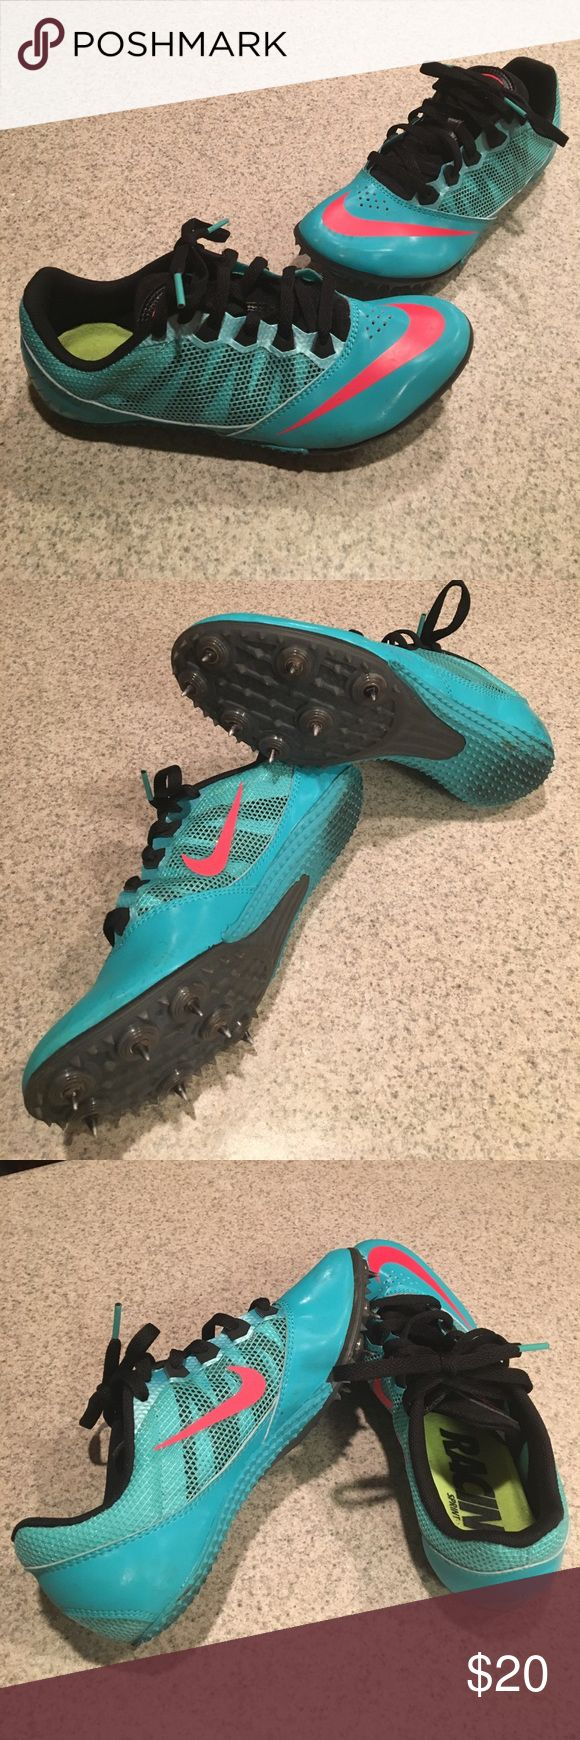 Nike racing sprint track spikes size 6 Teal and pink nike racing sprint track spikes. Spikes and tread are in excellent condition. Shoes are in new condition with small amount of track staining on soles. Feet are growing so these had to go. Nike Shoes Athletic Shoes